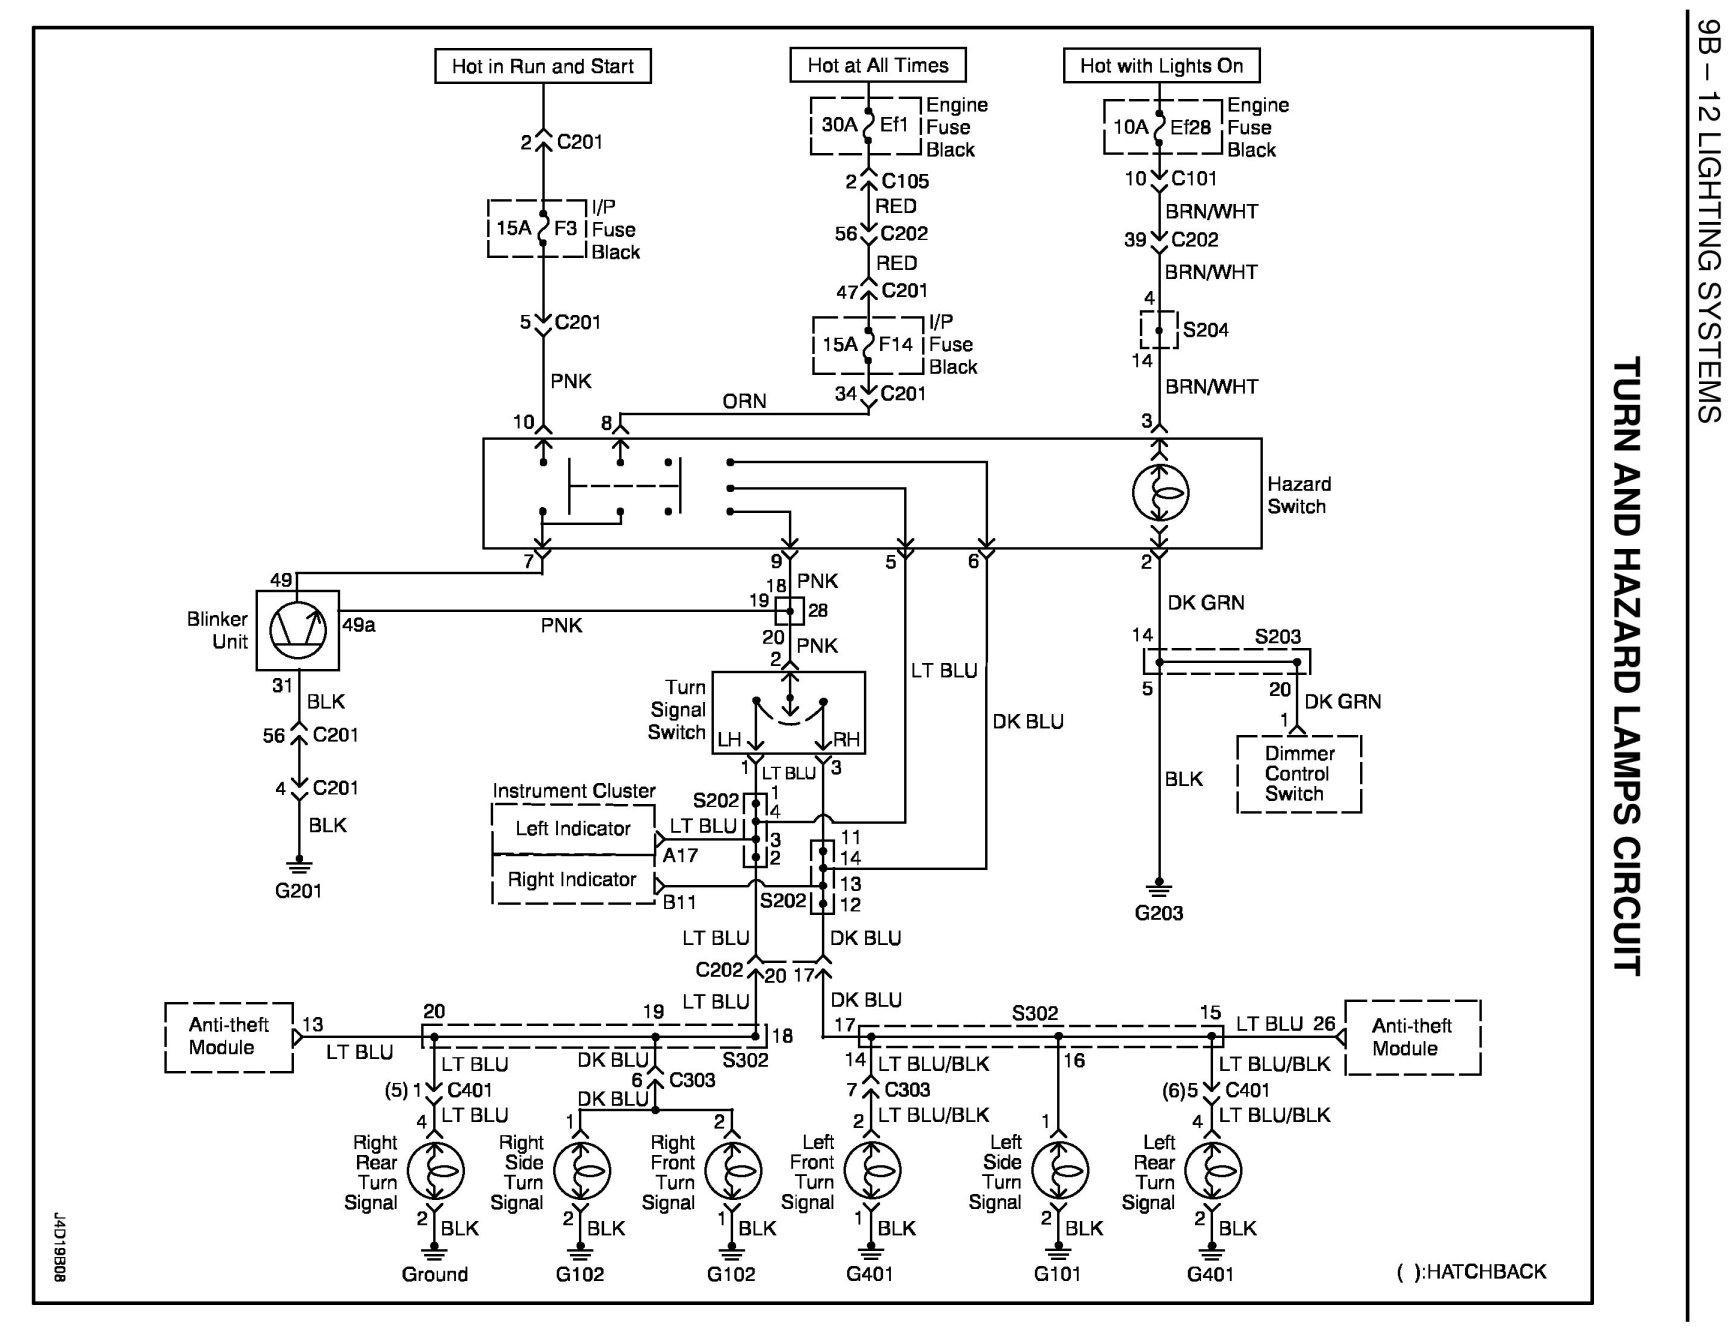 Suzuki Forenza Wiring Diagram Great Design Of 2007 Reno Fuse Box 2006 Aerio Stereo